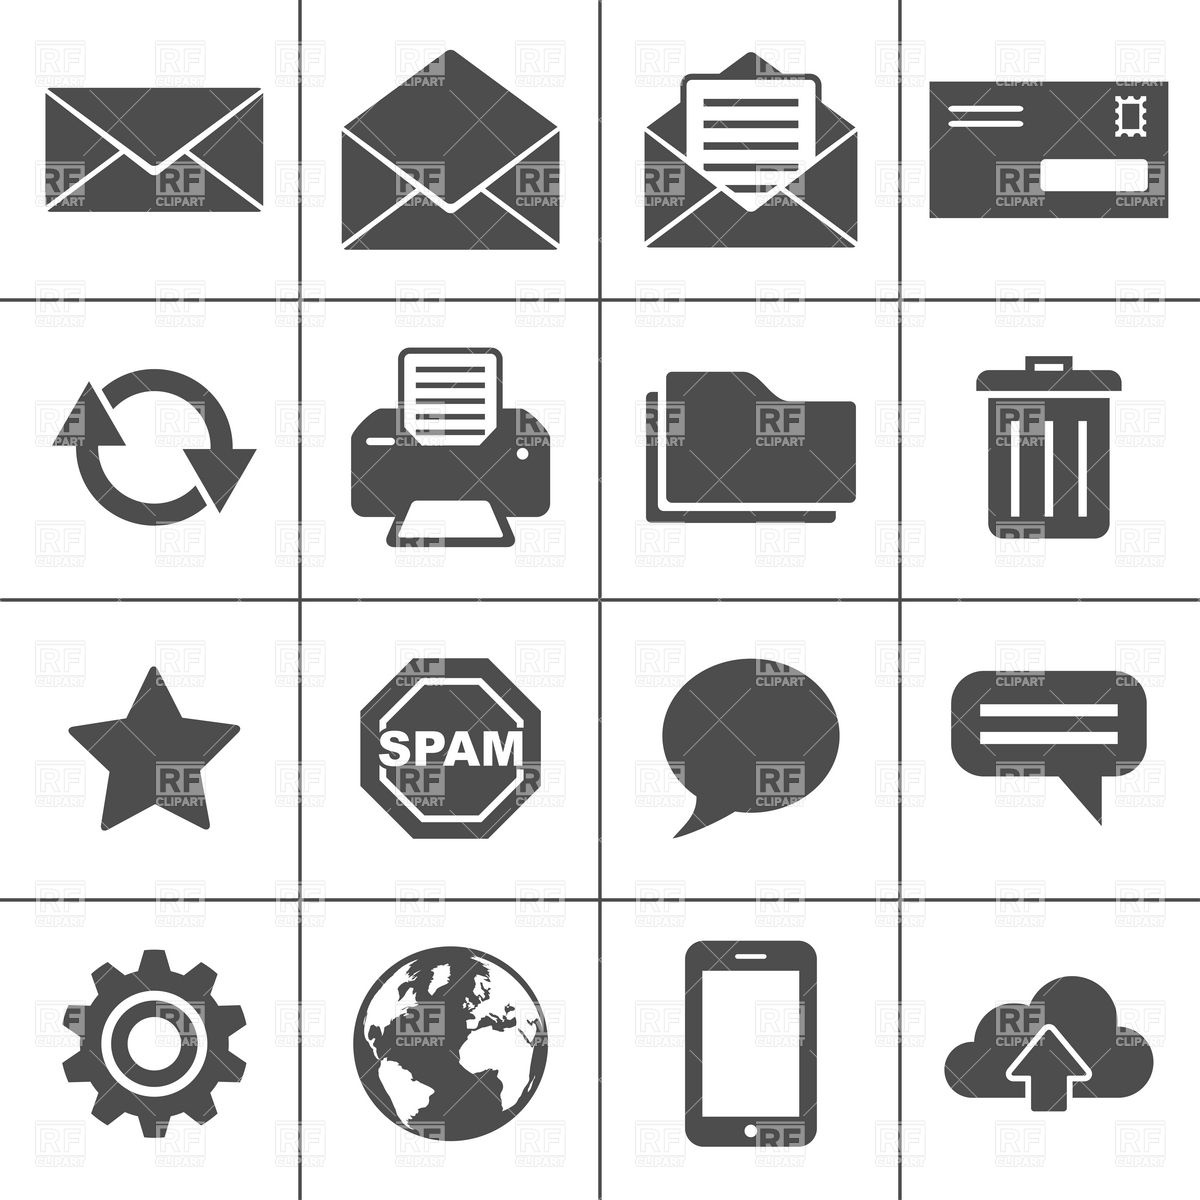 Email and Communication Icons Vector Image #5941.